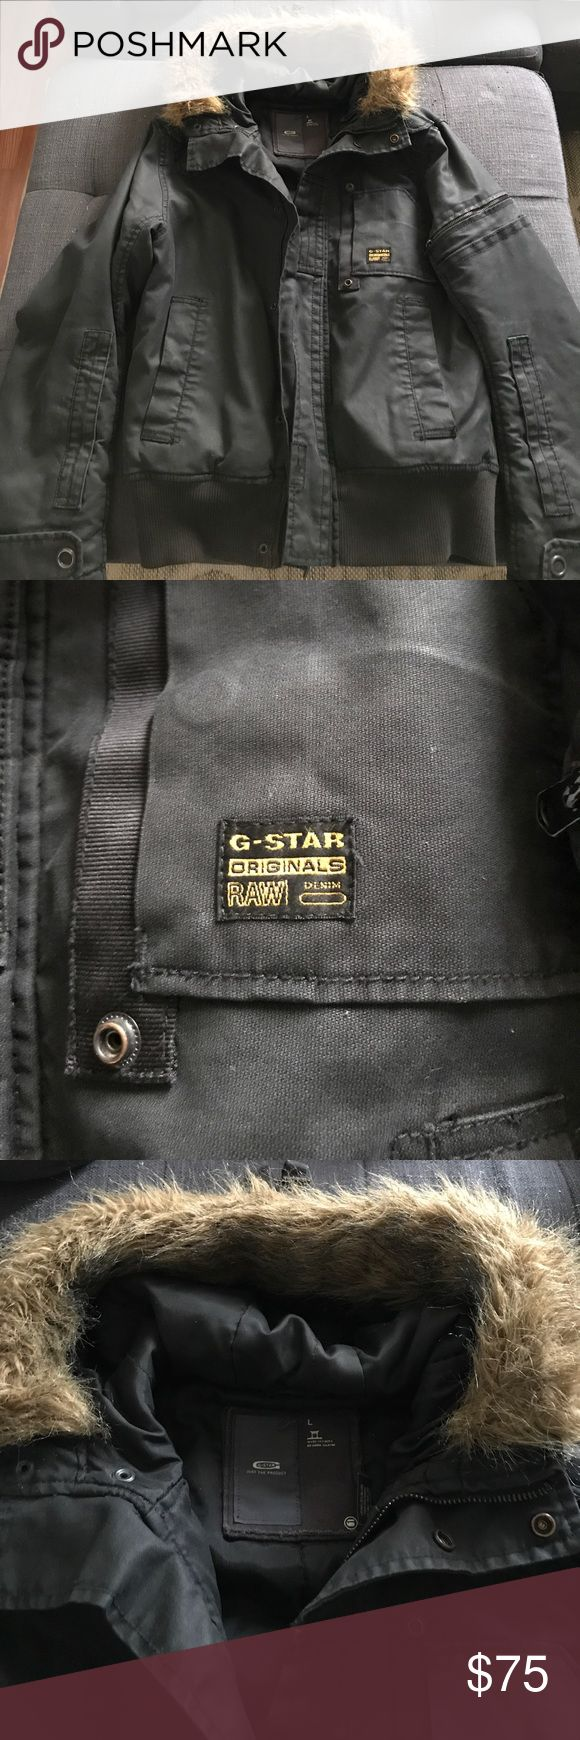 G-Star Parka G-Star navy parka with faux fur hood - worn but in good condition G-Star Jackets & Coats Ski & Snowboard